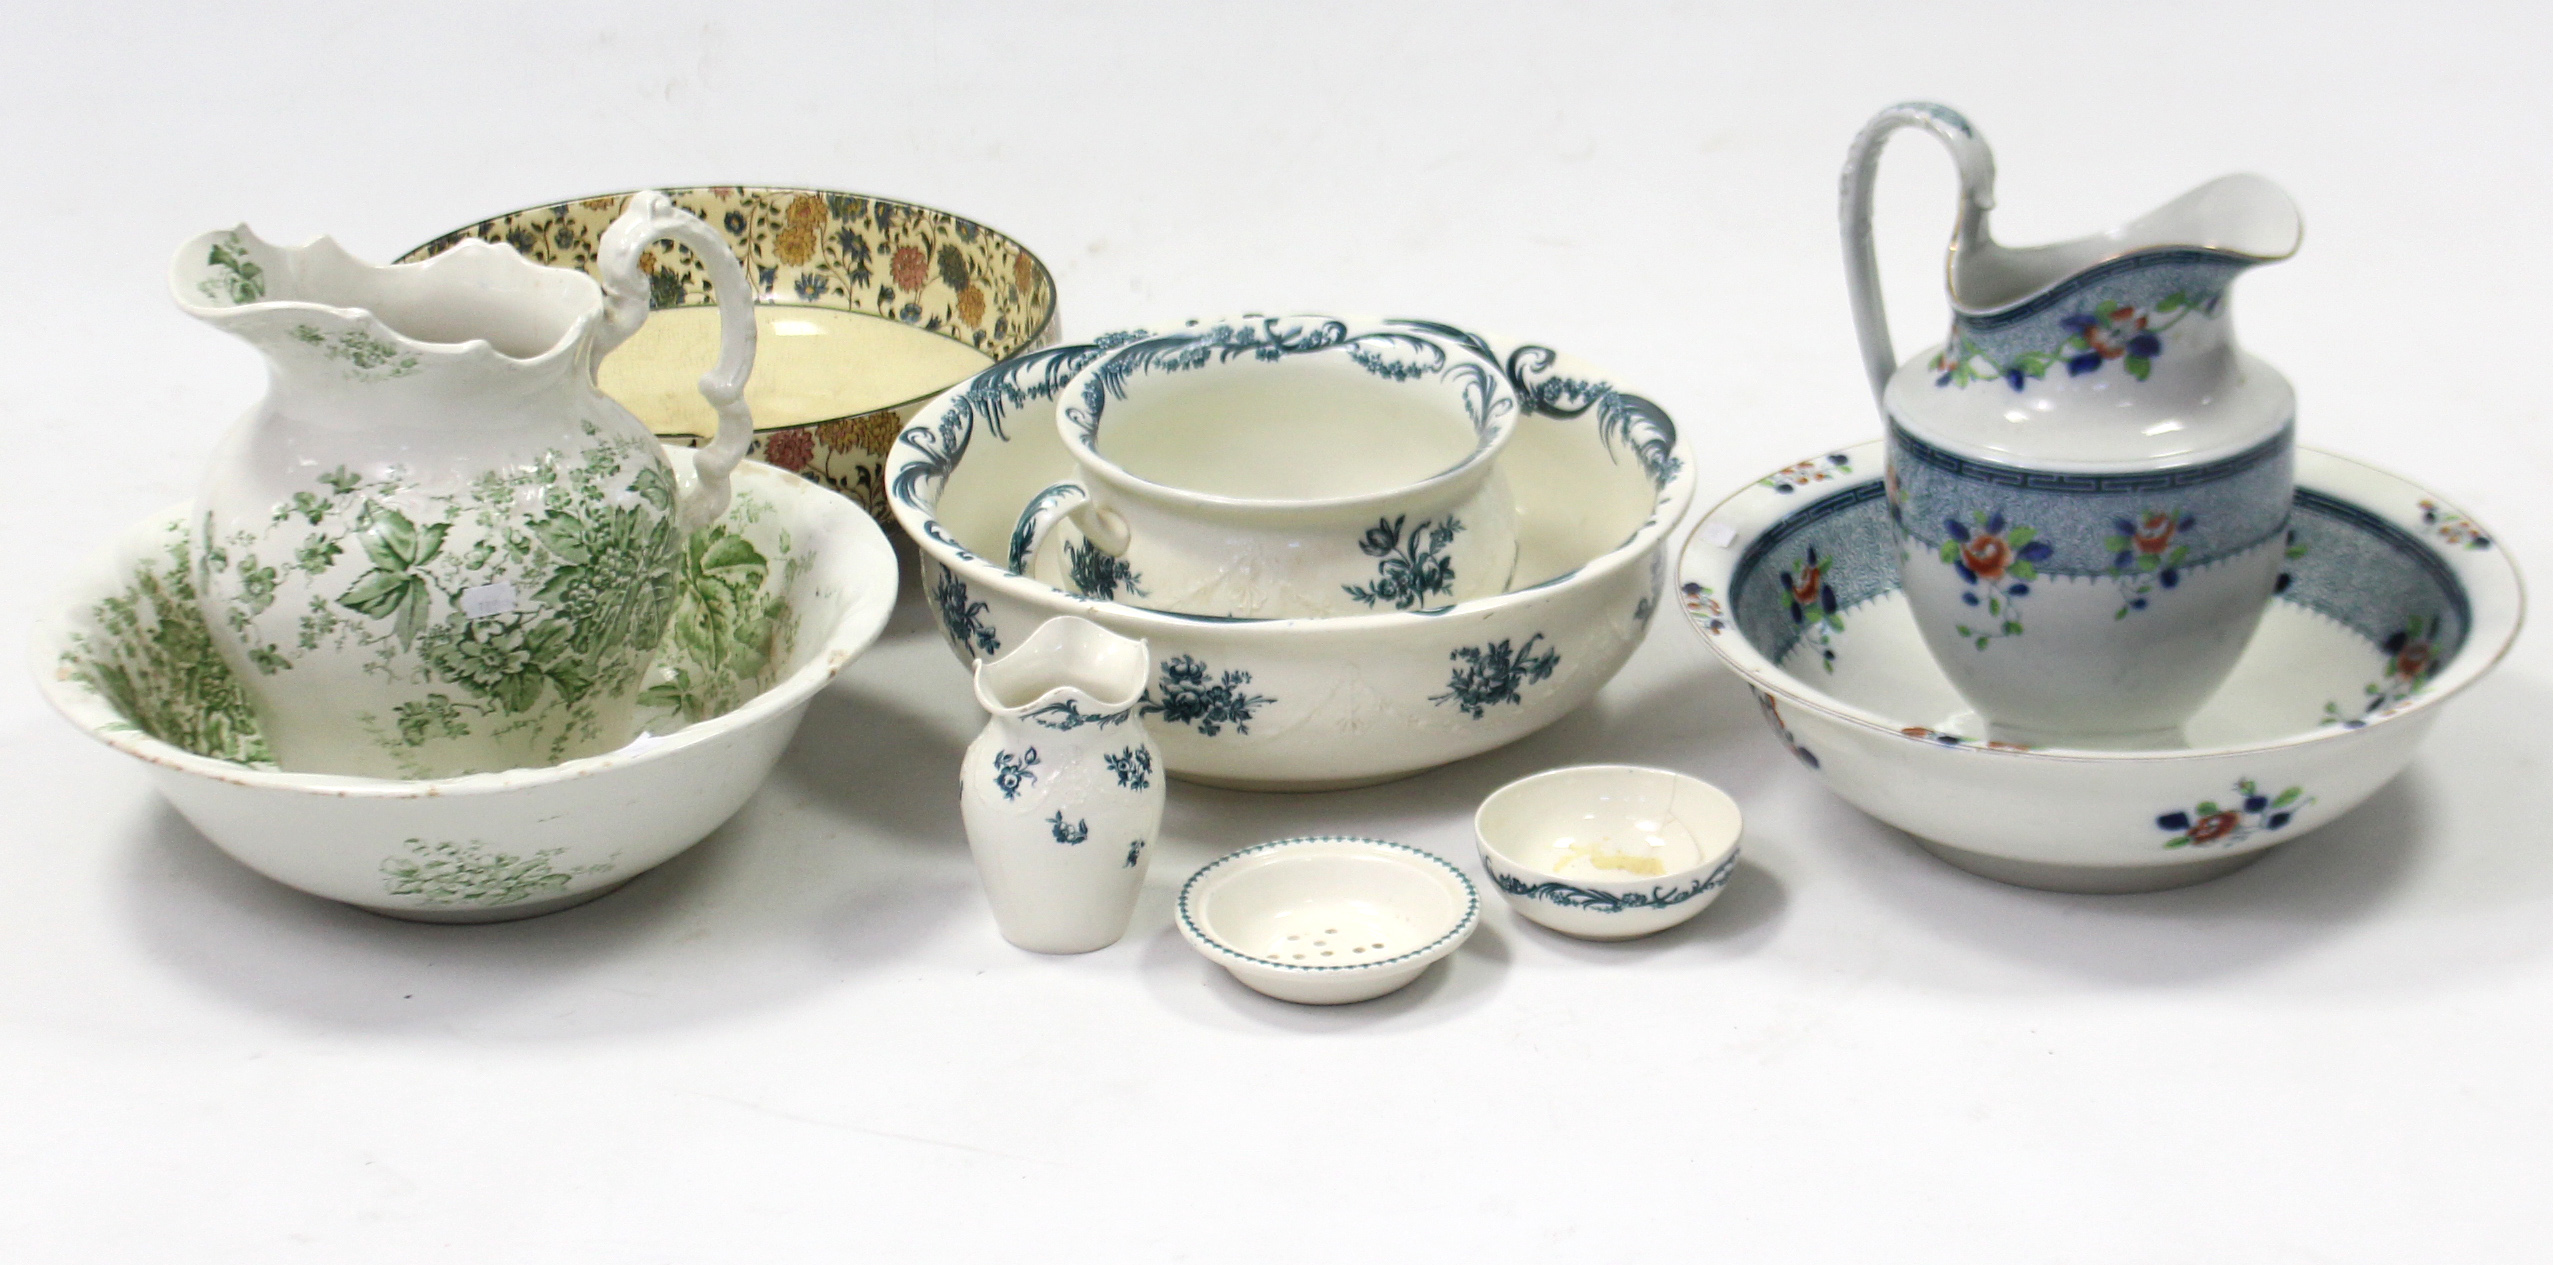 """Lot 189 - A Wedgwood of Etruria """"Wren"""" pattern four-piece part toilet set; two floral decorated toilet"""